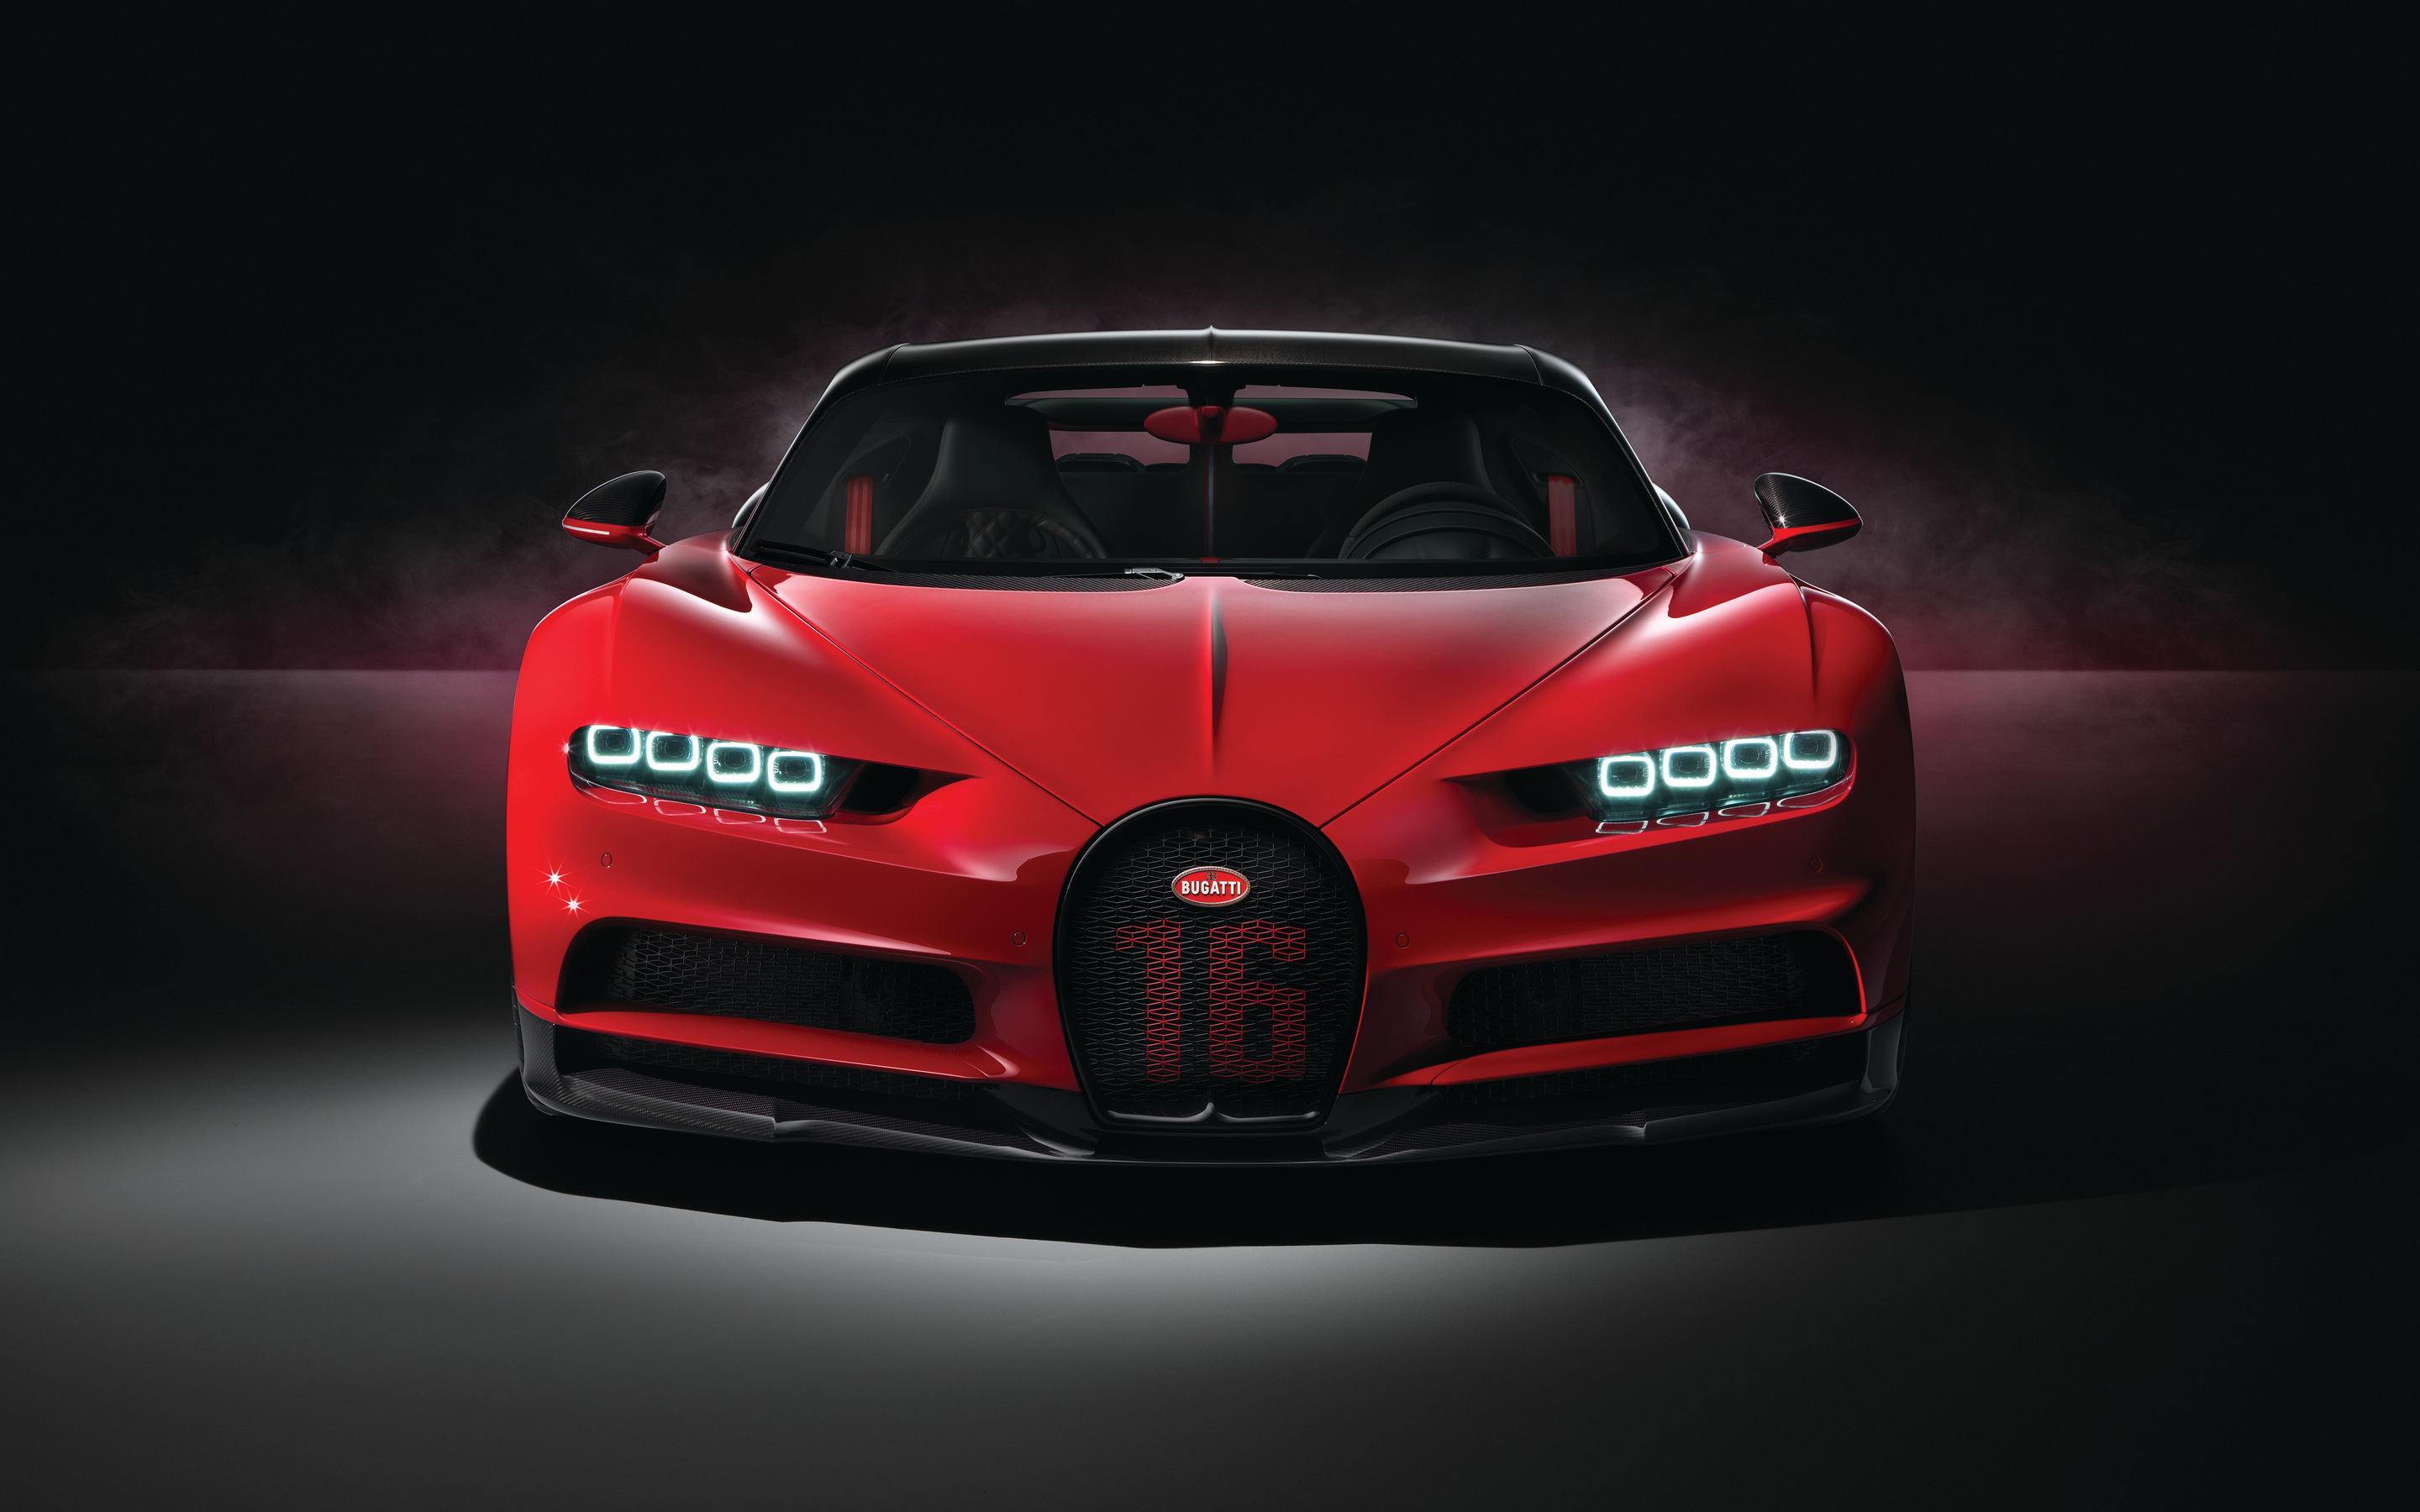 2880x1800 Red Bugatti Chiron Sport 2018 4k Macbook Pro